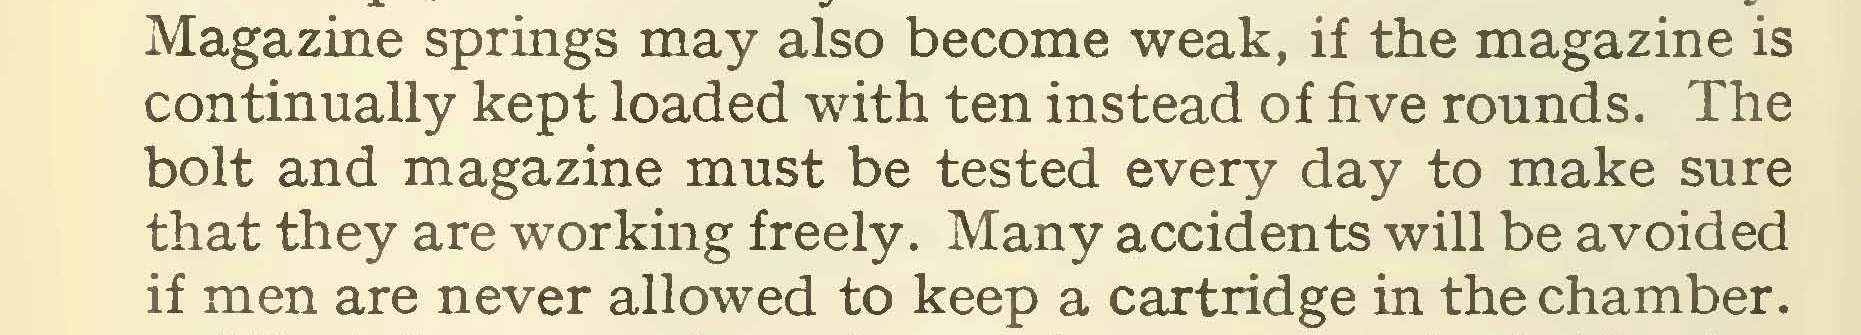 Pages-from-musketry-Solano-1915-extract